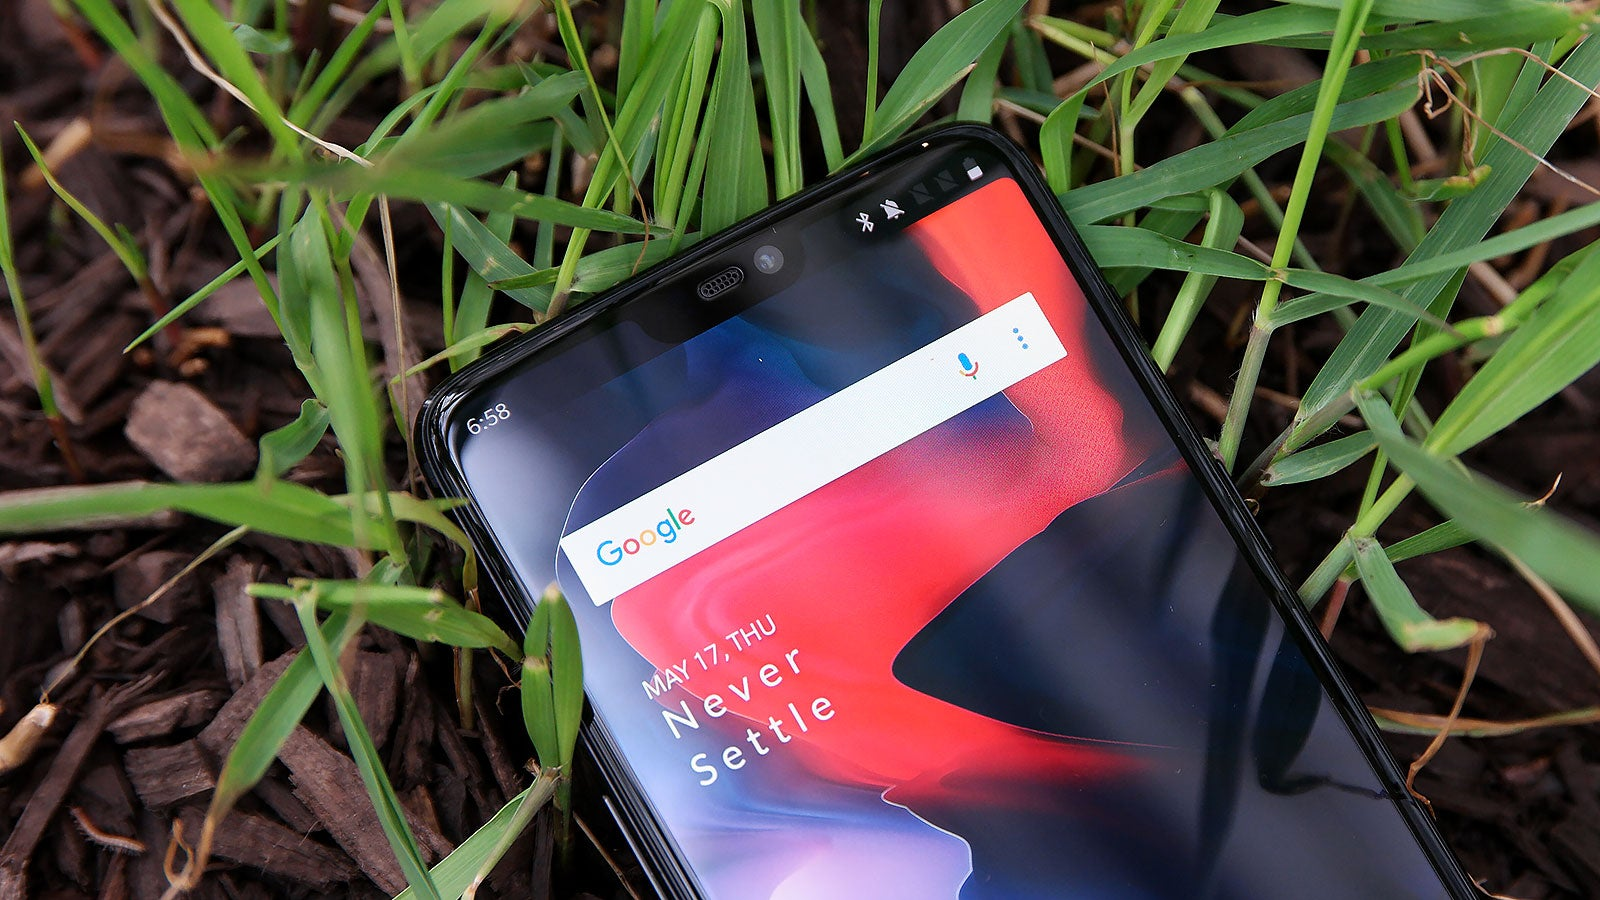 OnePlus 6 Review: The Best Android Phone That Won't Destroy